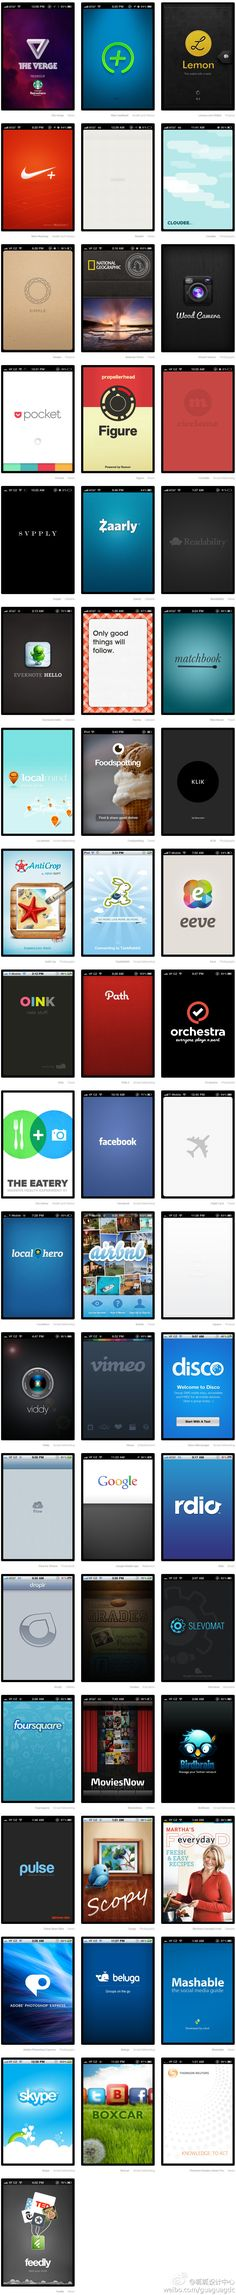 More iPhone Splash screens than you can handle